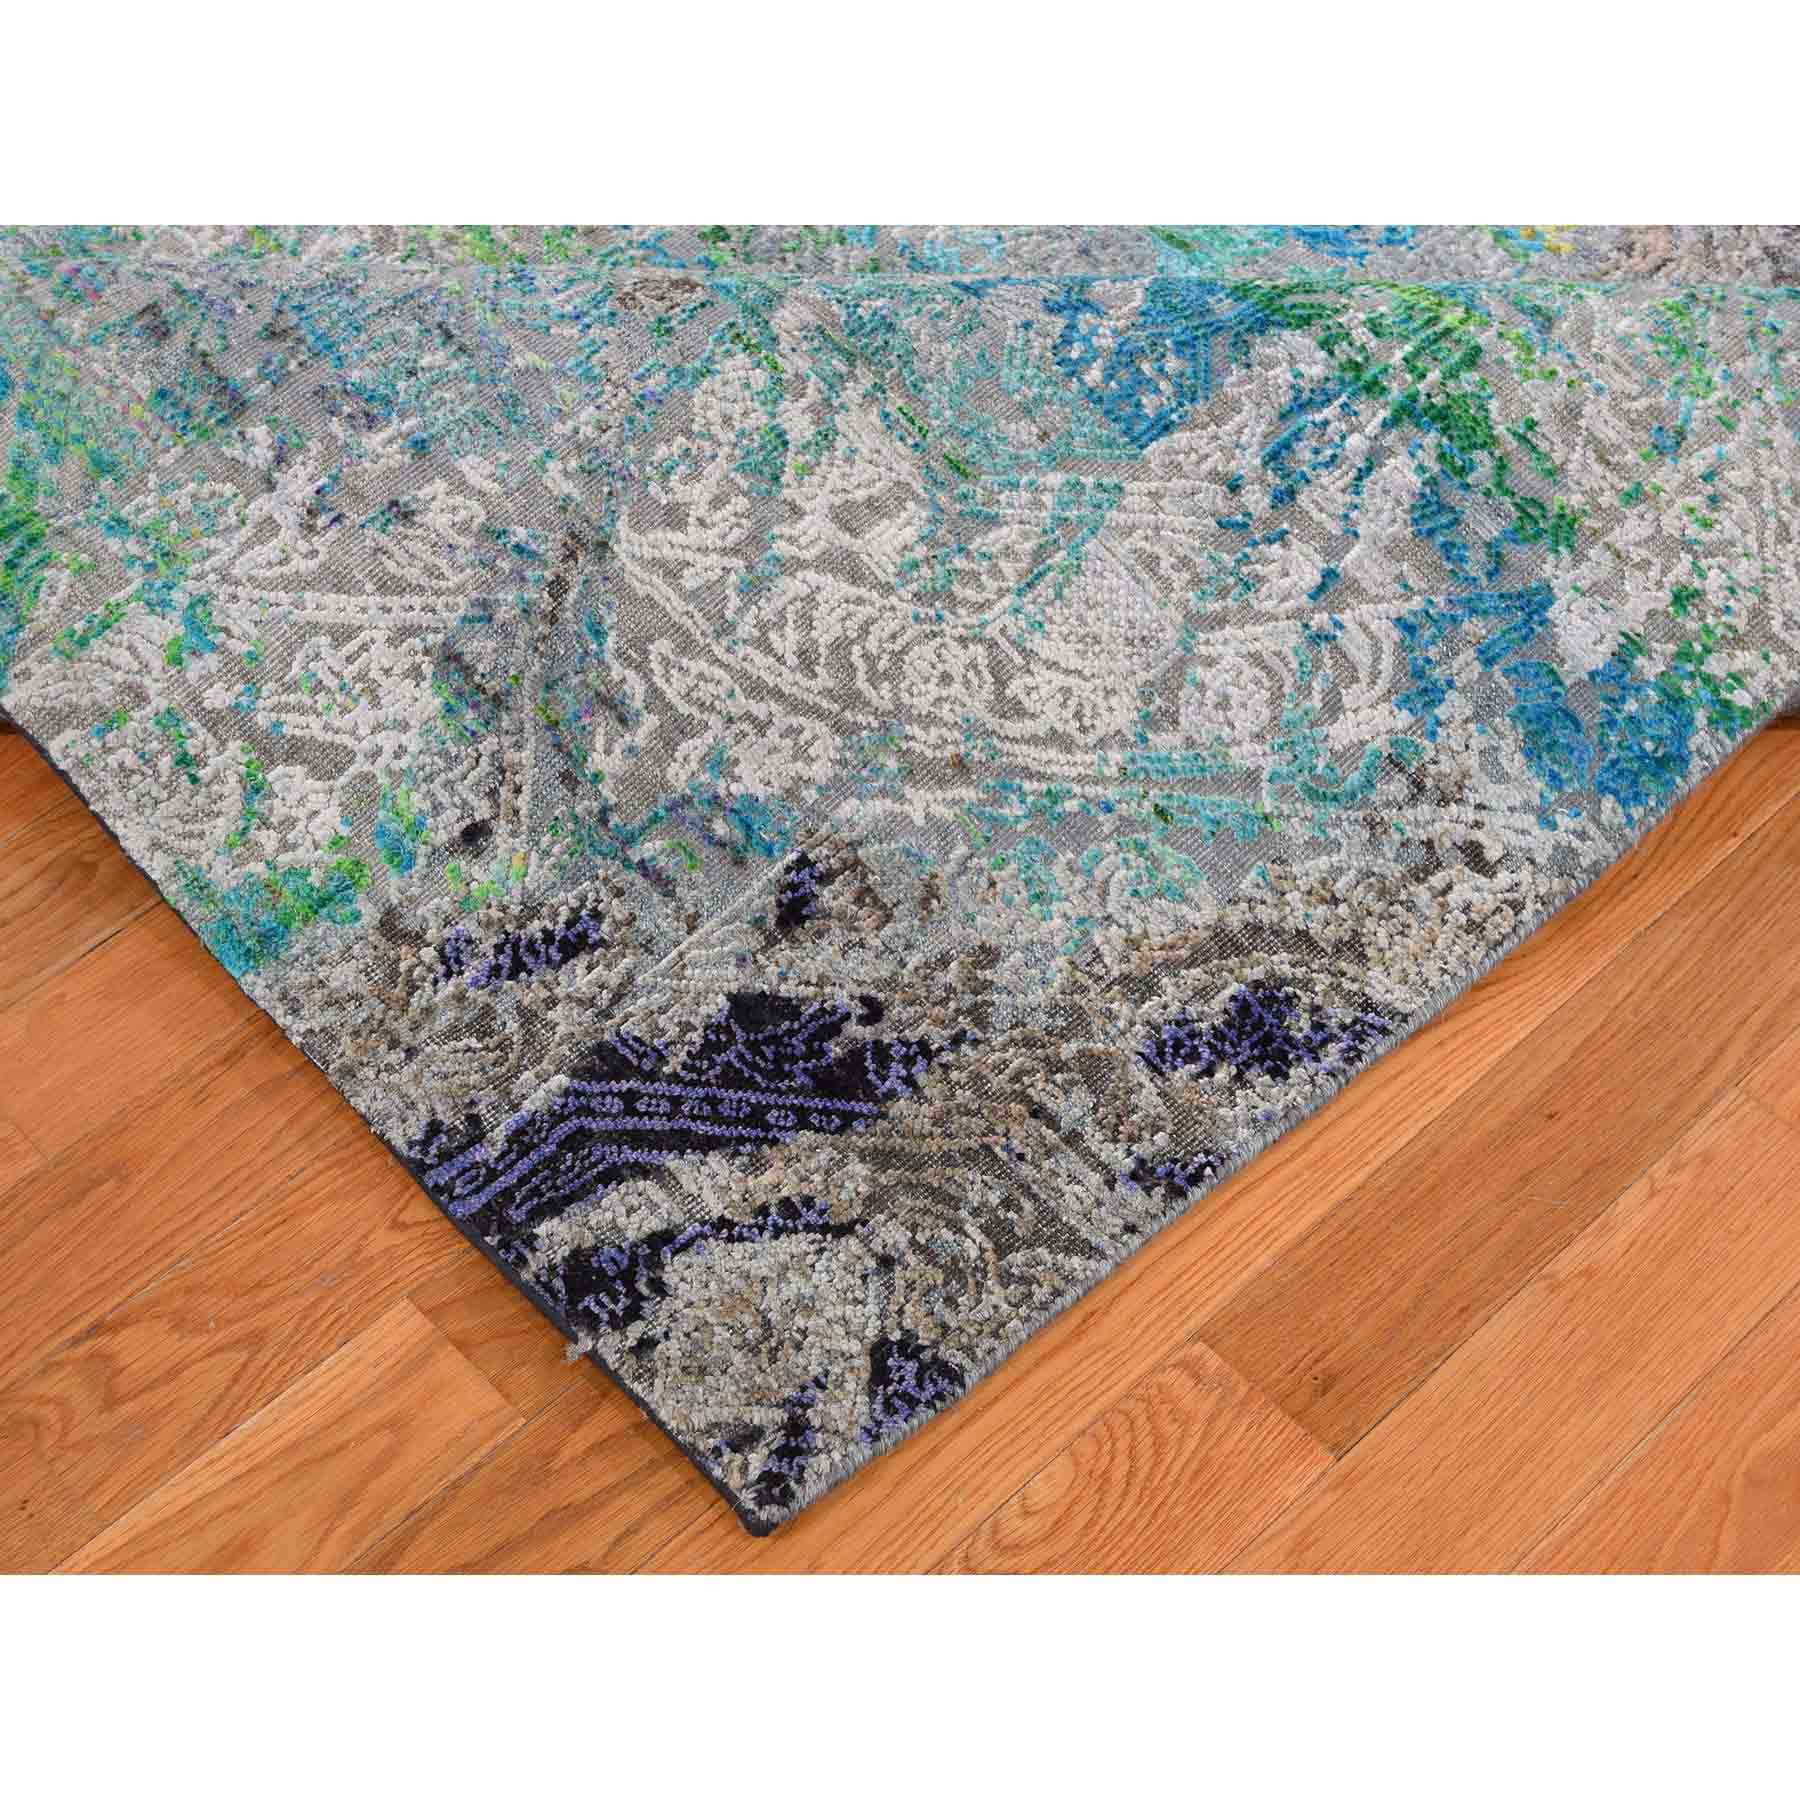 Modern-and-Contemporary-Hand-Knotted-Rug-228545